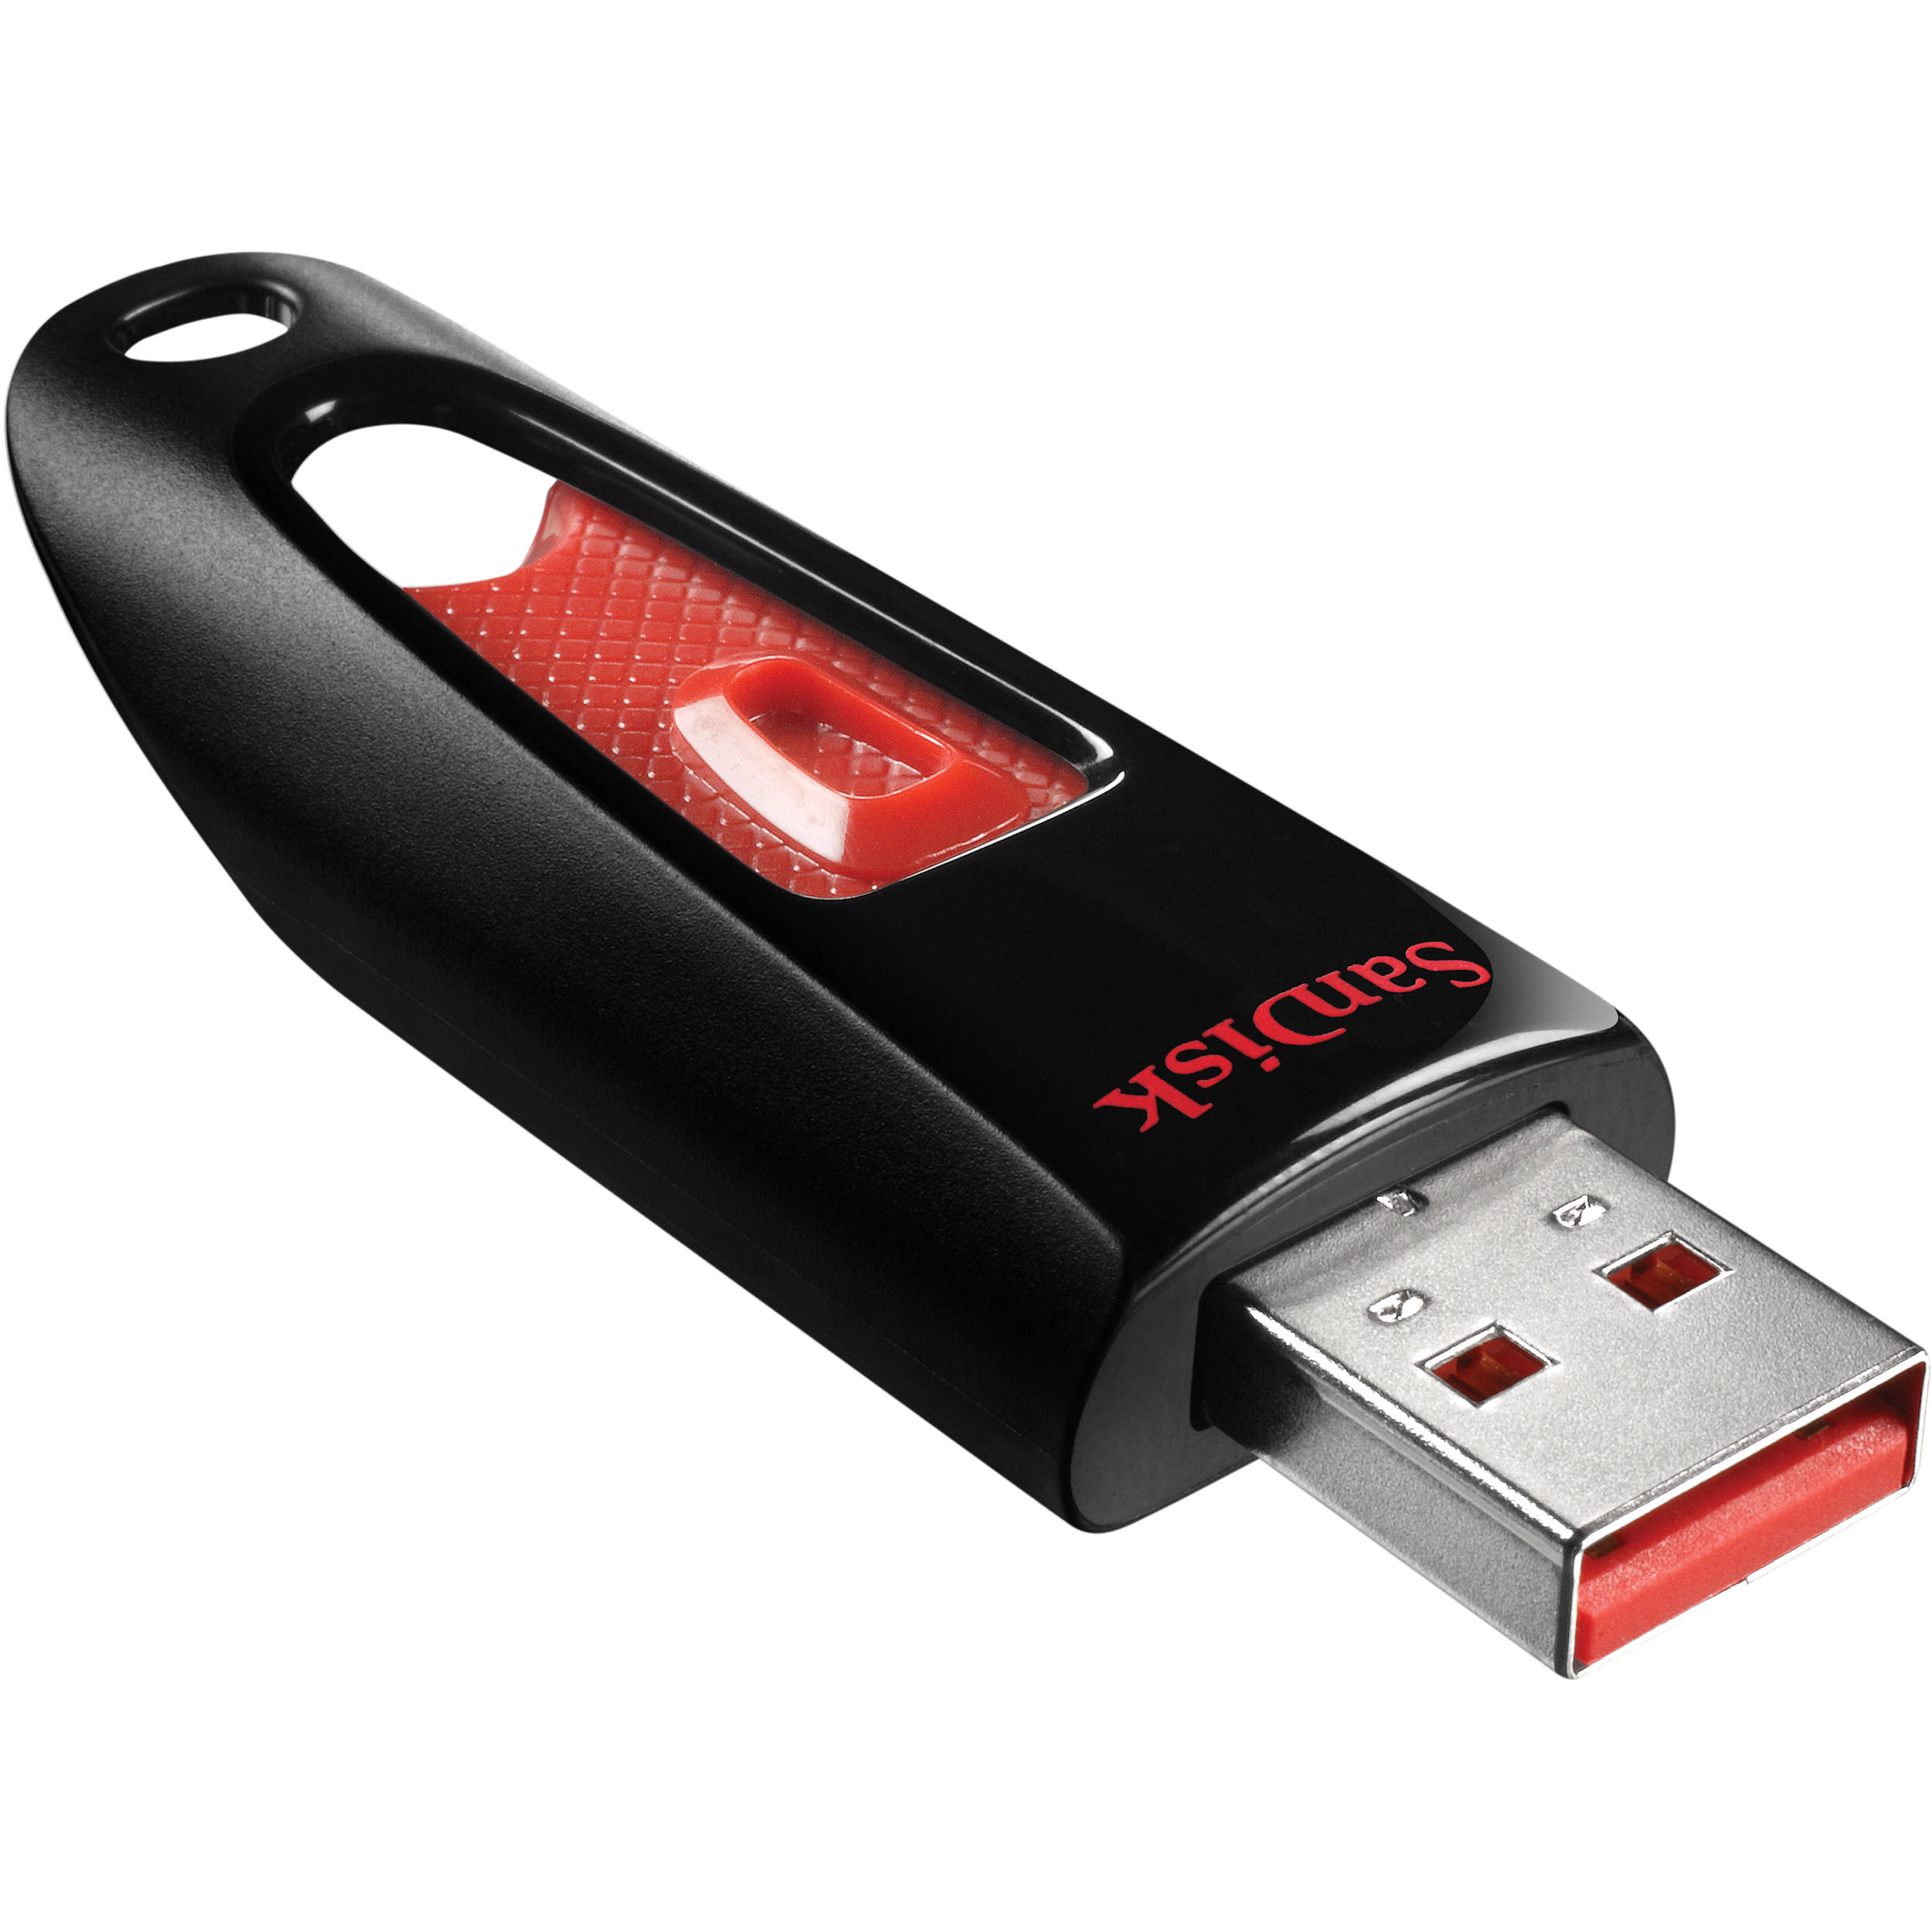 7a181e88a SanDisk 16GB Ultra USB Drive SDCZ45-016G-A46 B H Photo Video